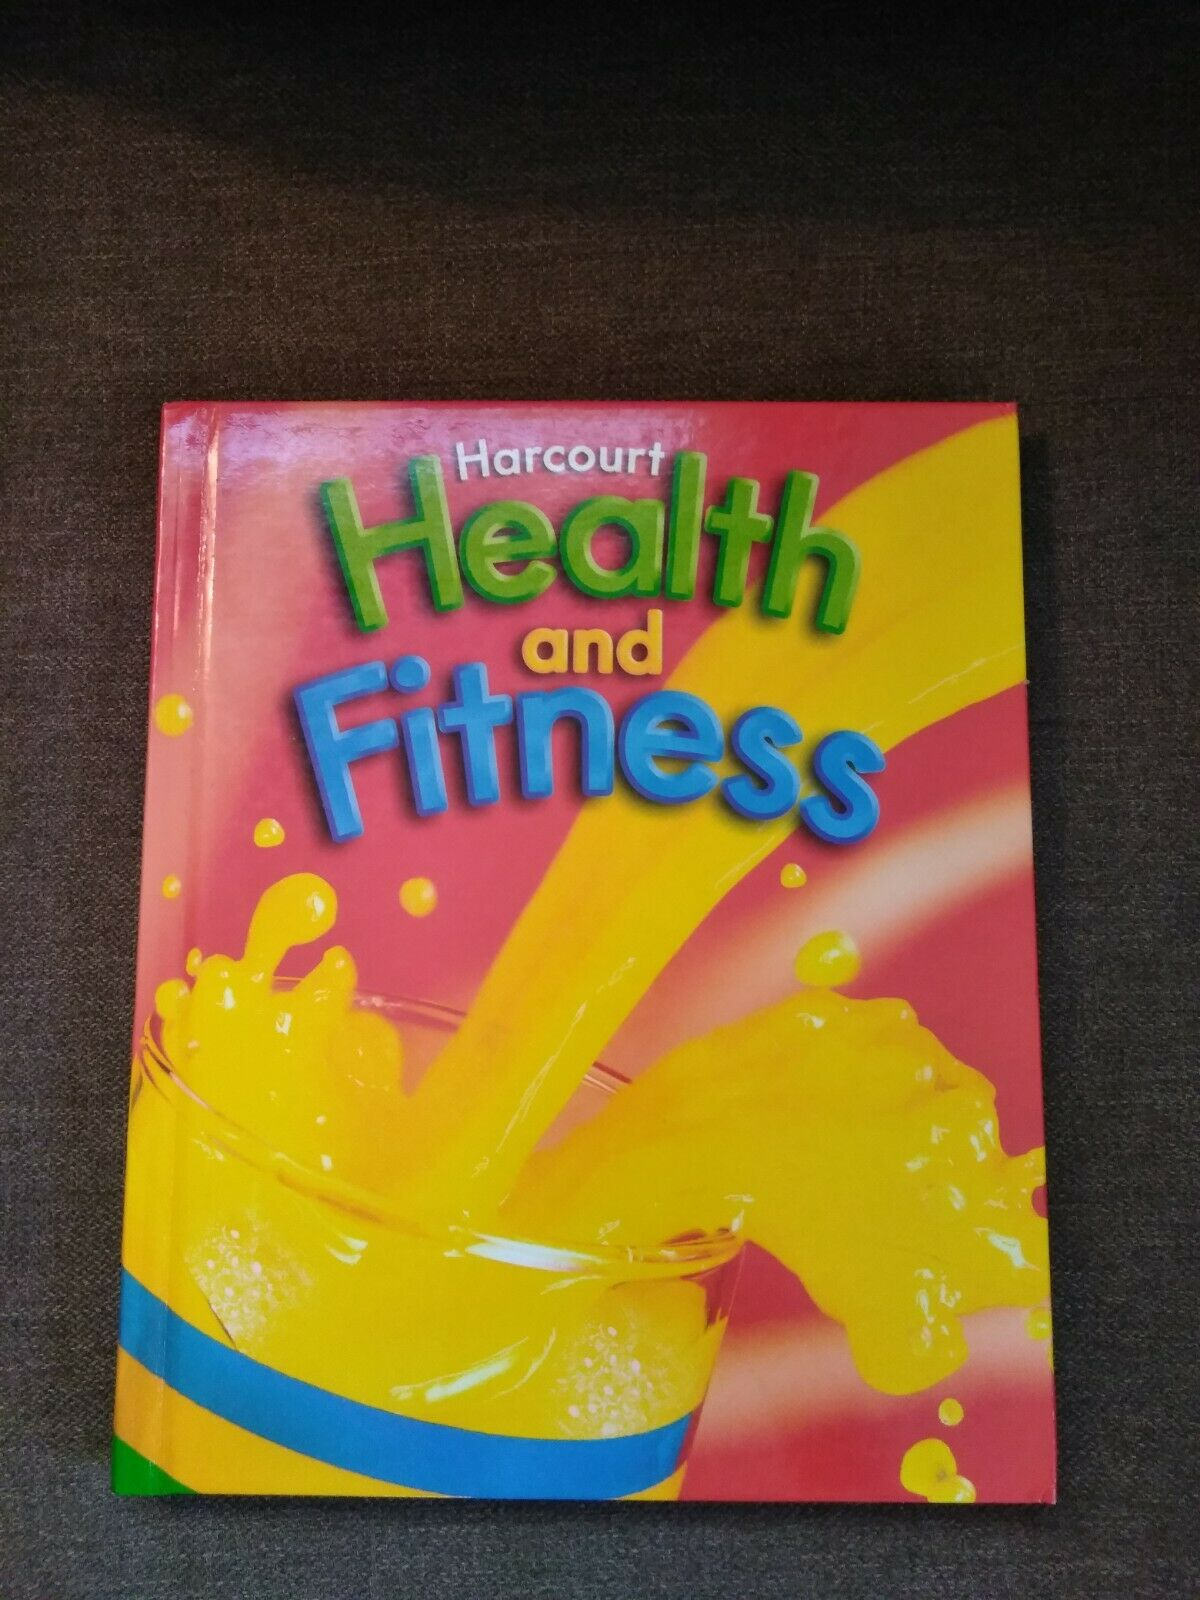 Harcourt health and fitness 2nd grade great condition 1